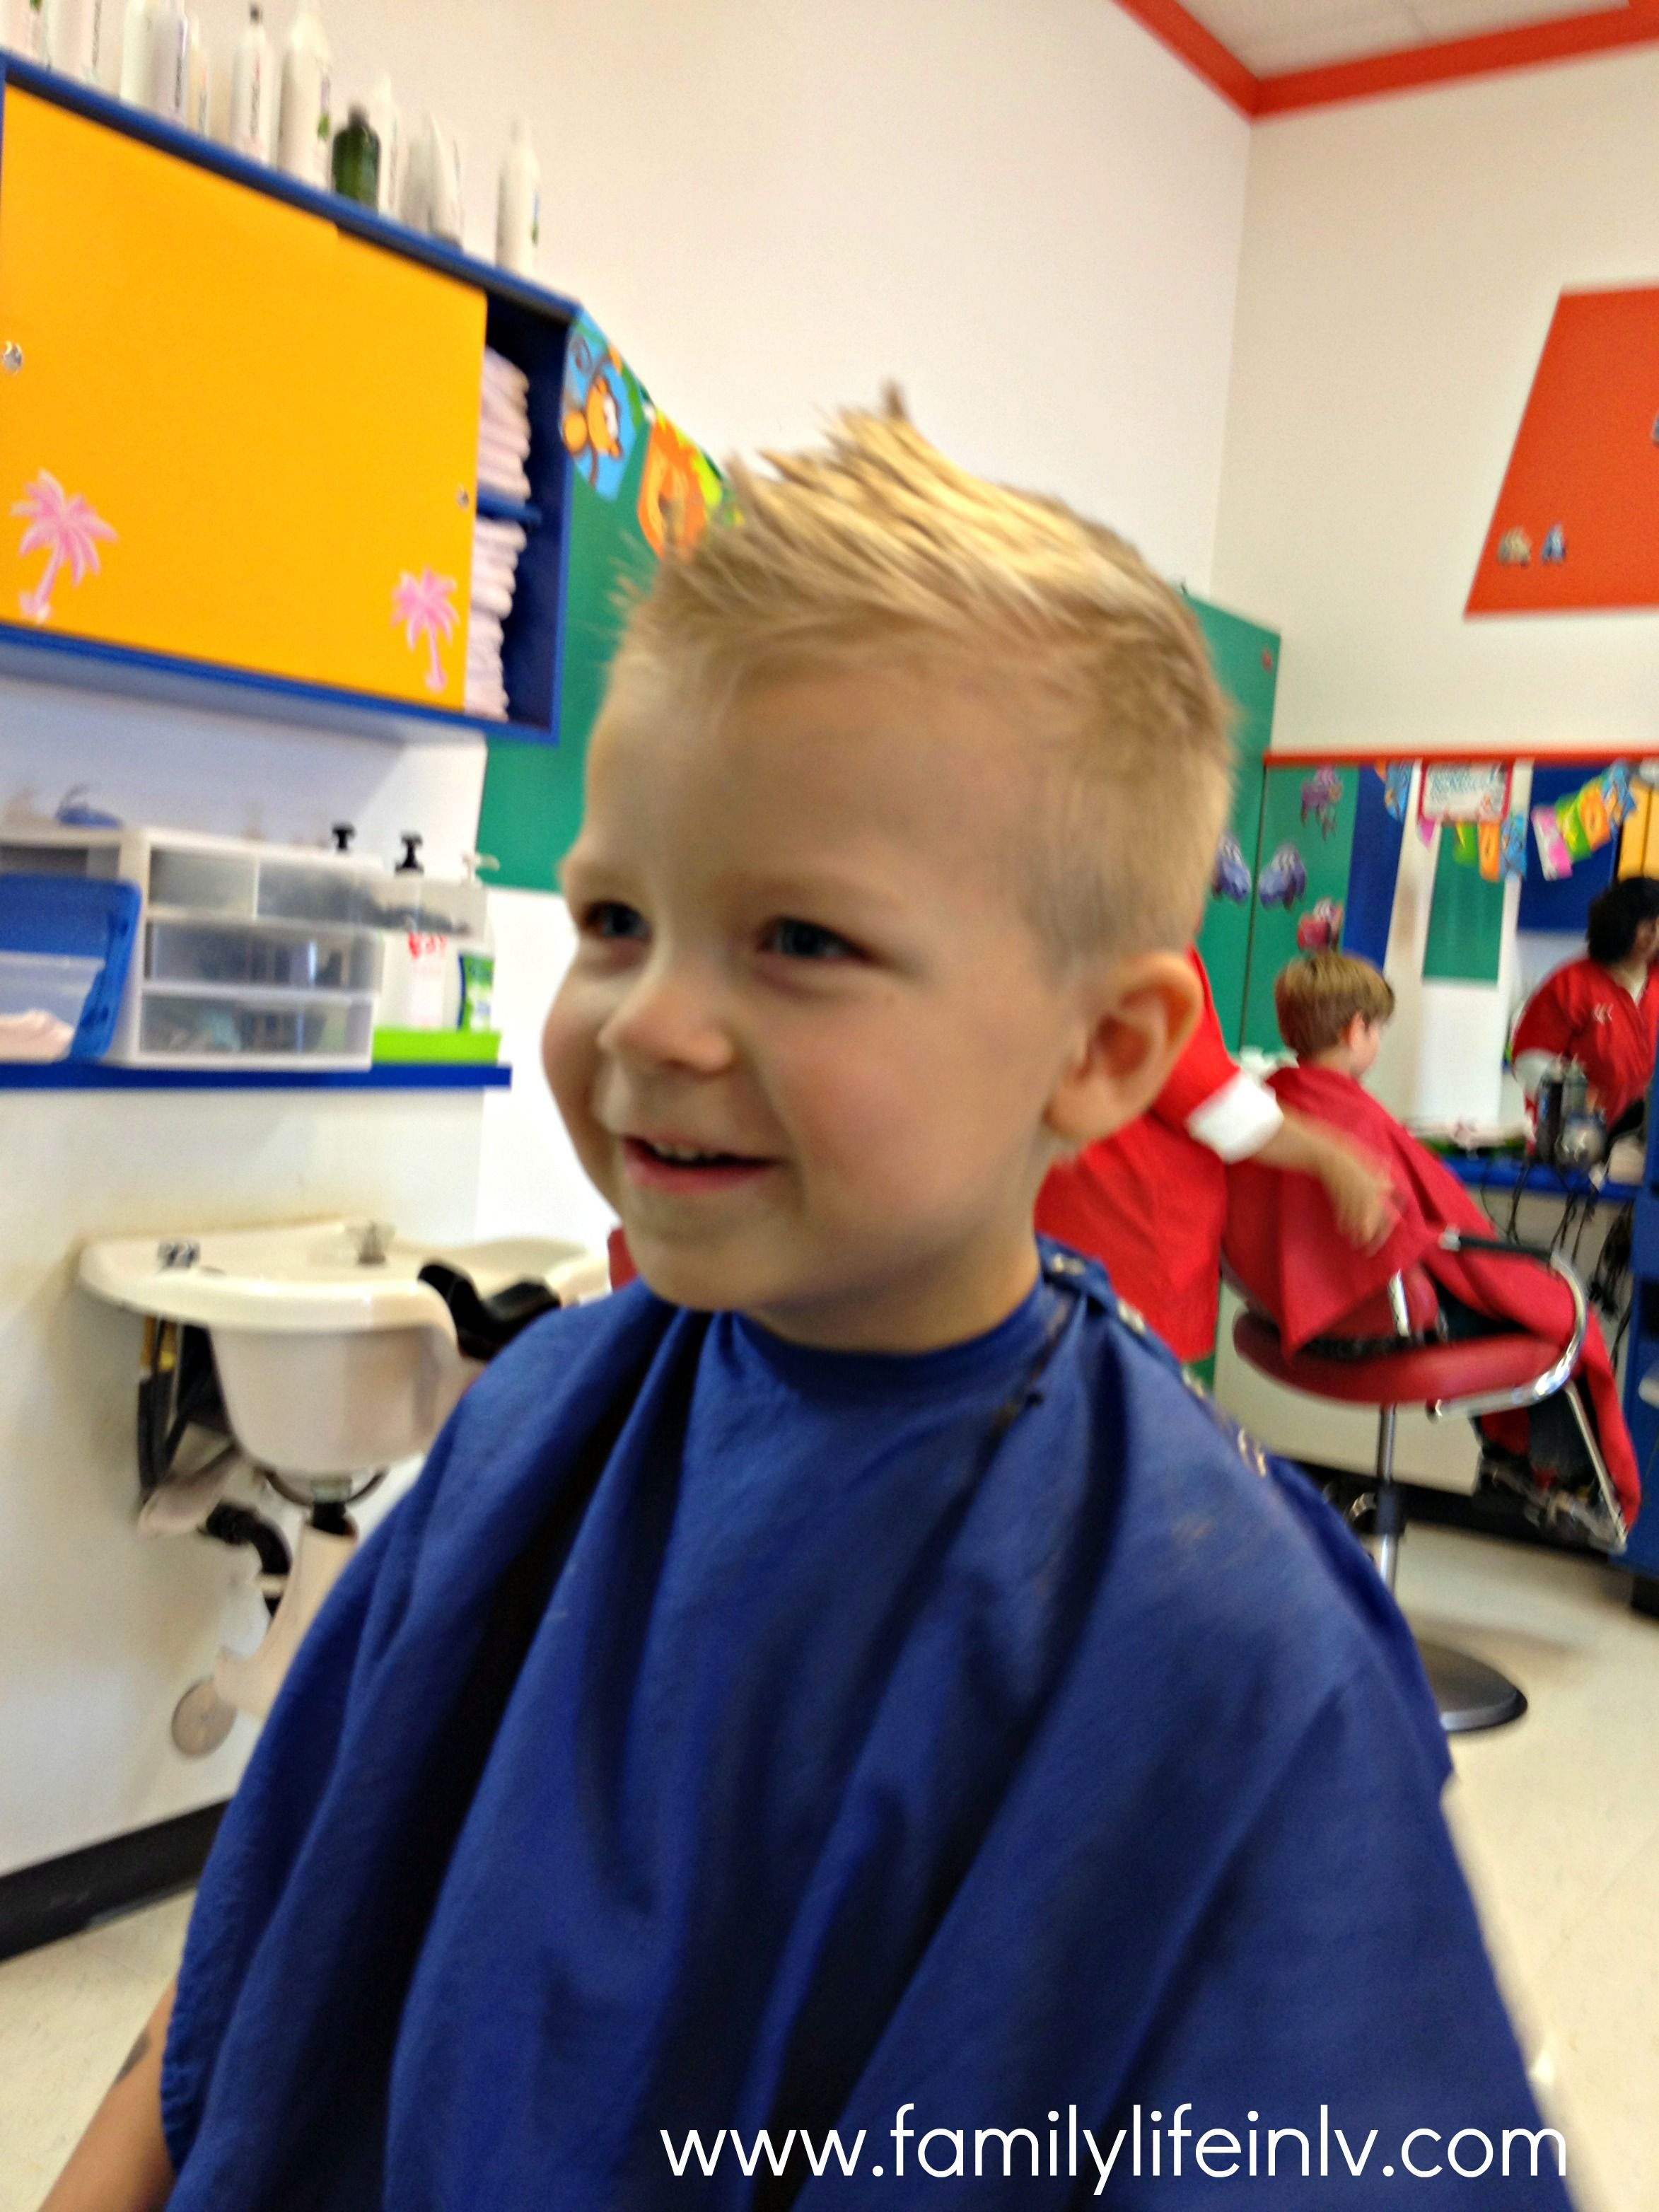 Sensational 1000 Images About Boy Style On Pinterest Boy Haircuts Toddler Short Hairstyles Gunalazisus